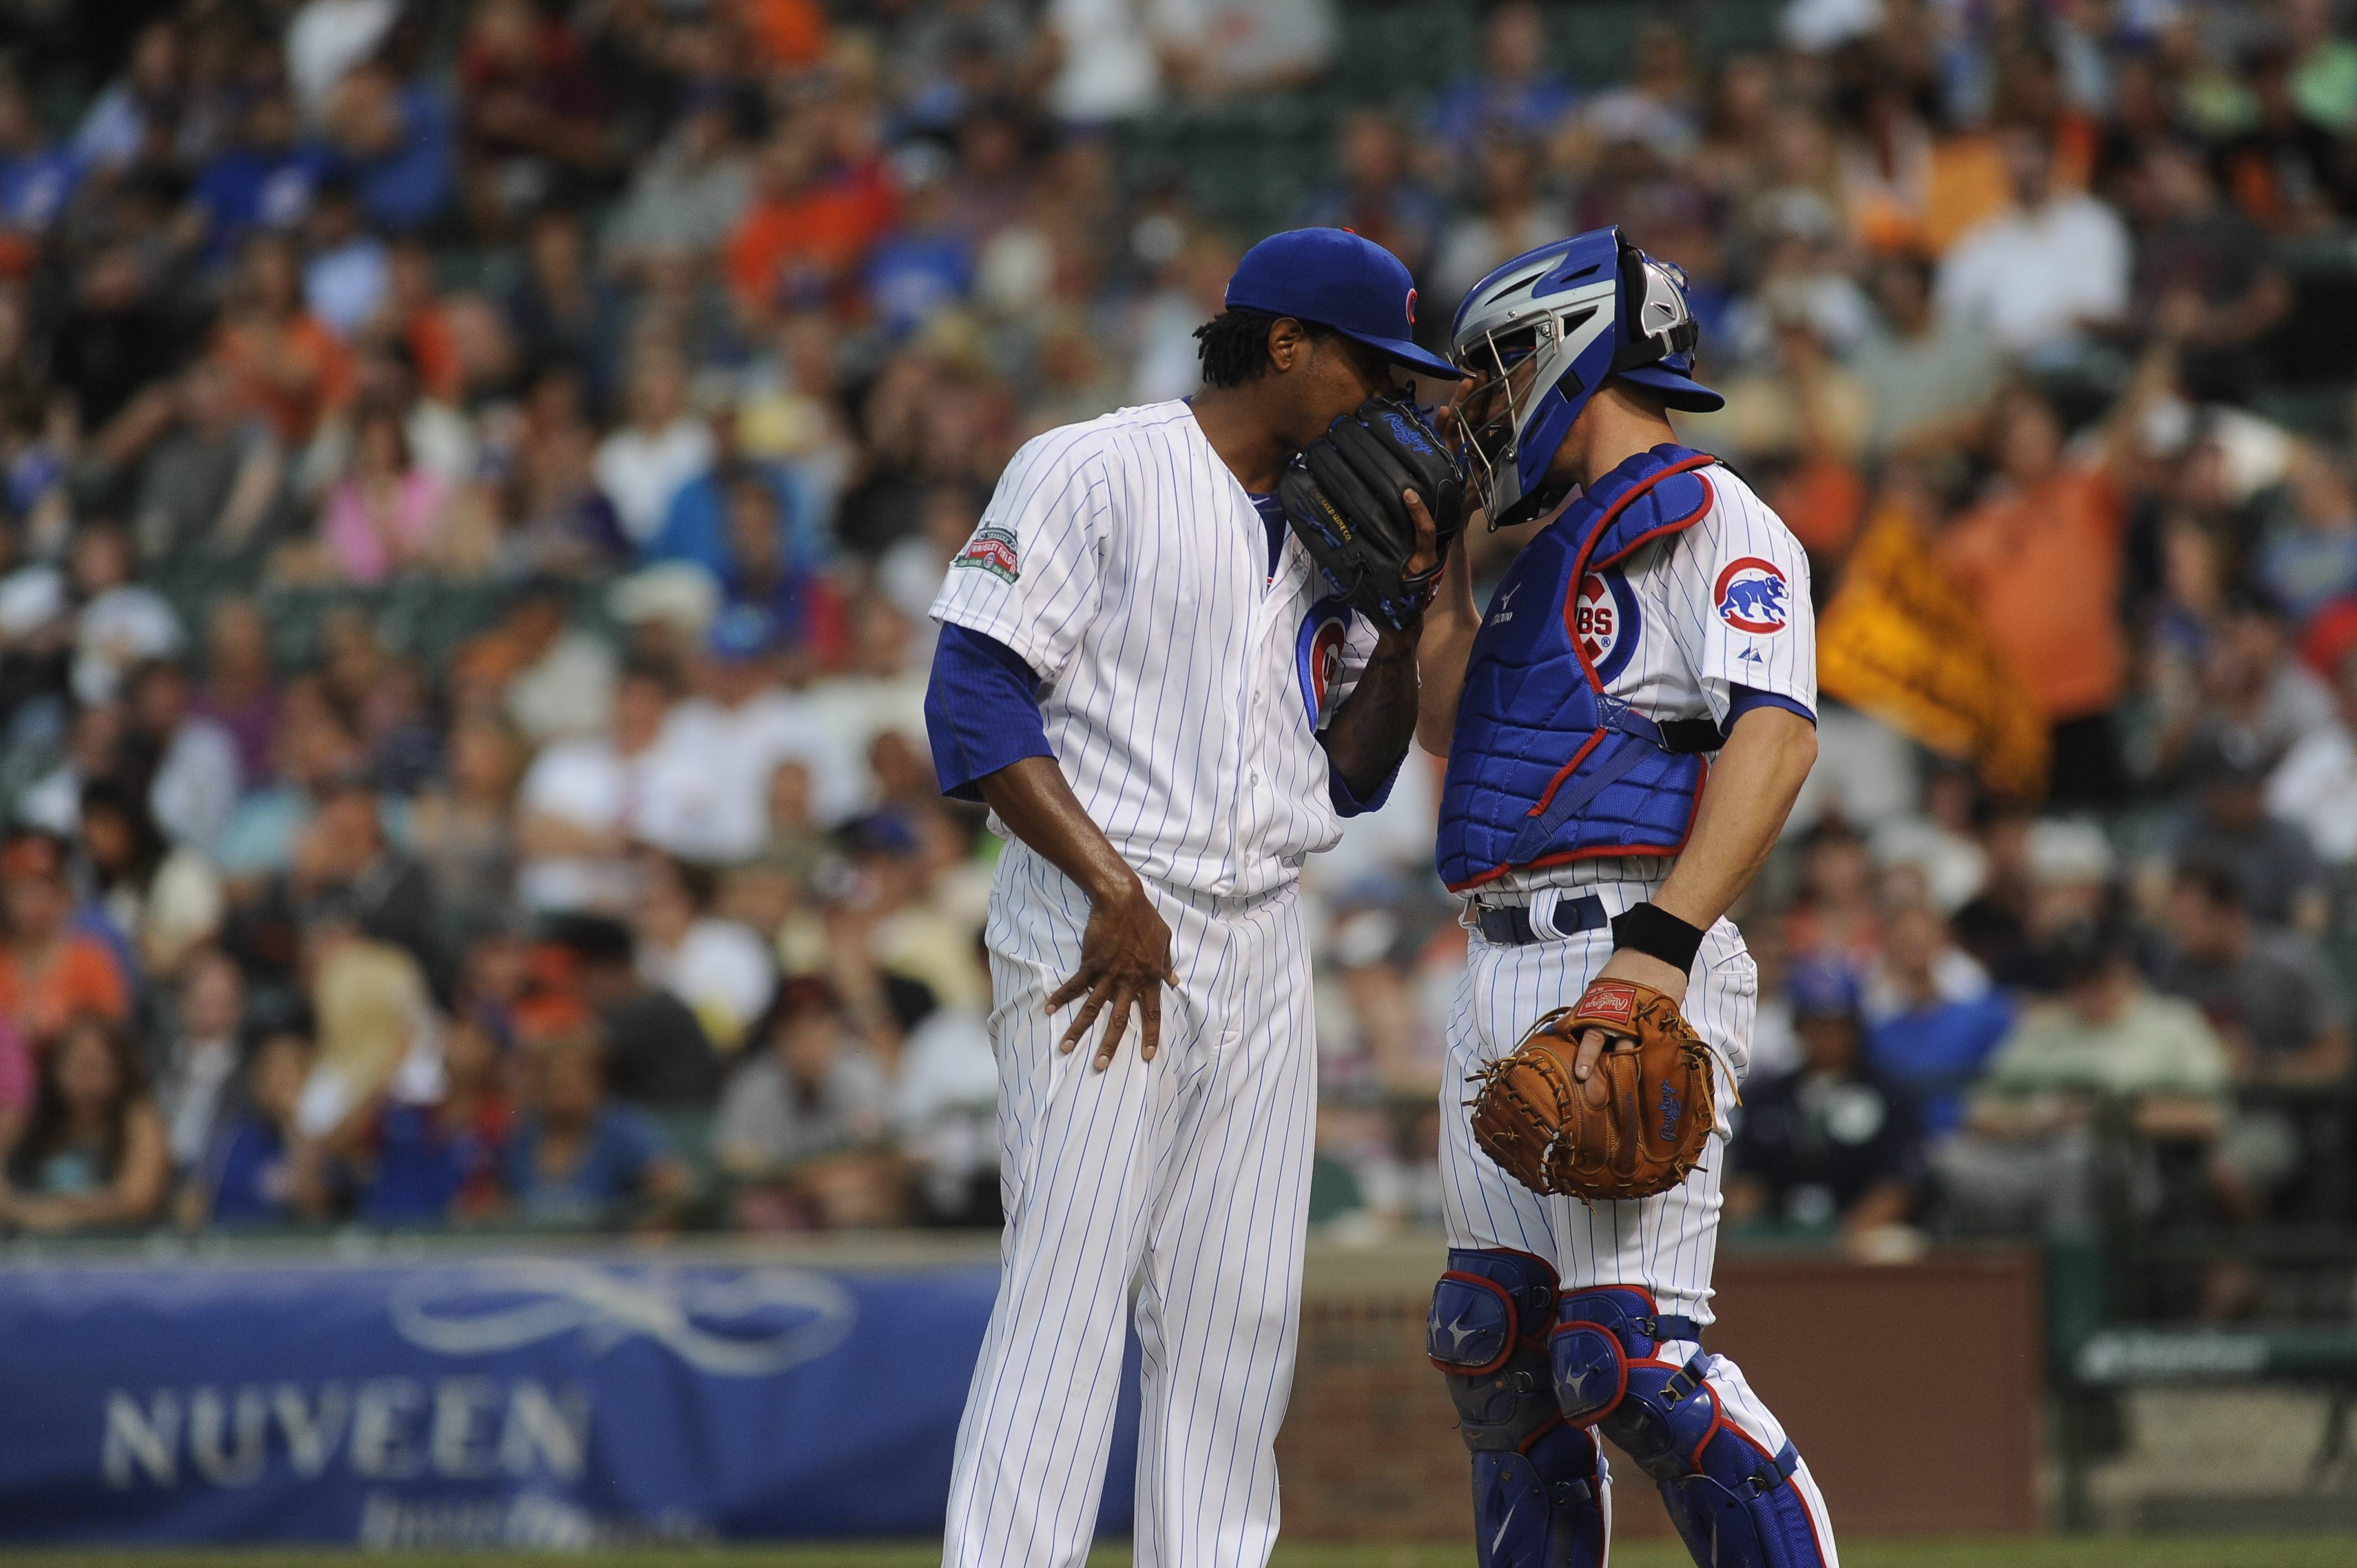 Chicago Cubs starting pitcher Edwin Jackson and Chicago Cubs catcher John Baker in a baseball game against the San Francisco Giants on Wednesday, Aug. 20, 2014, in Chicago.